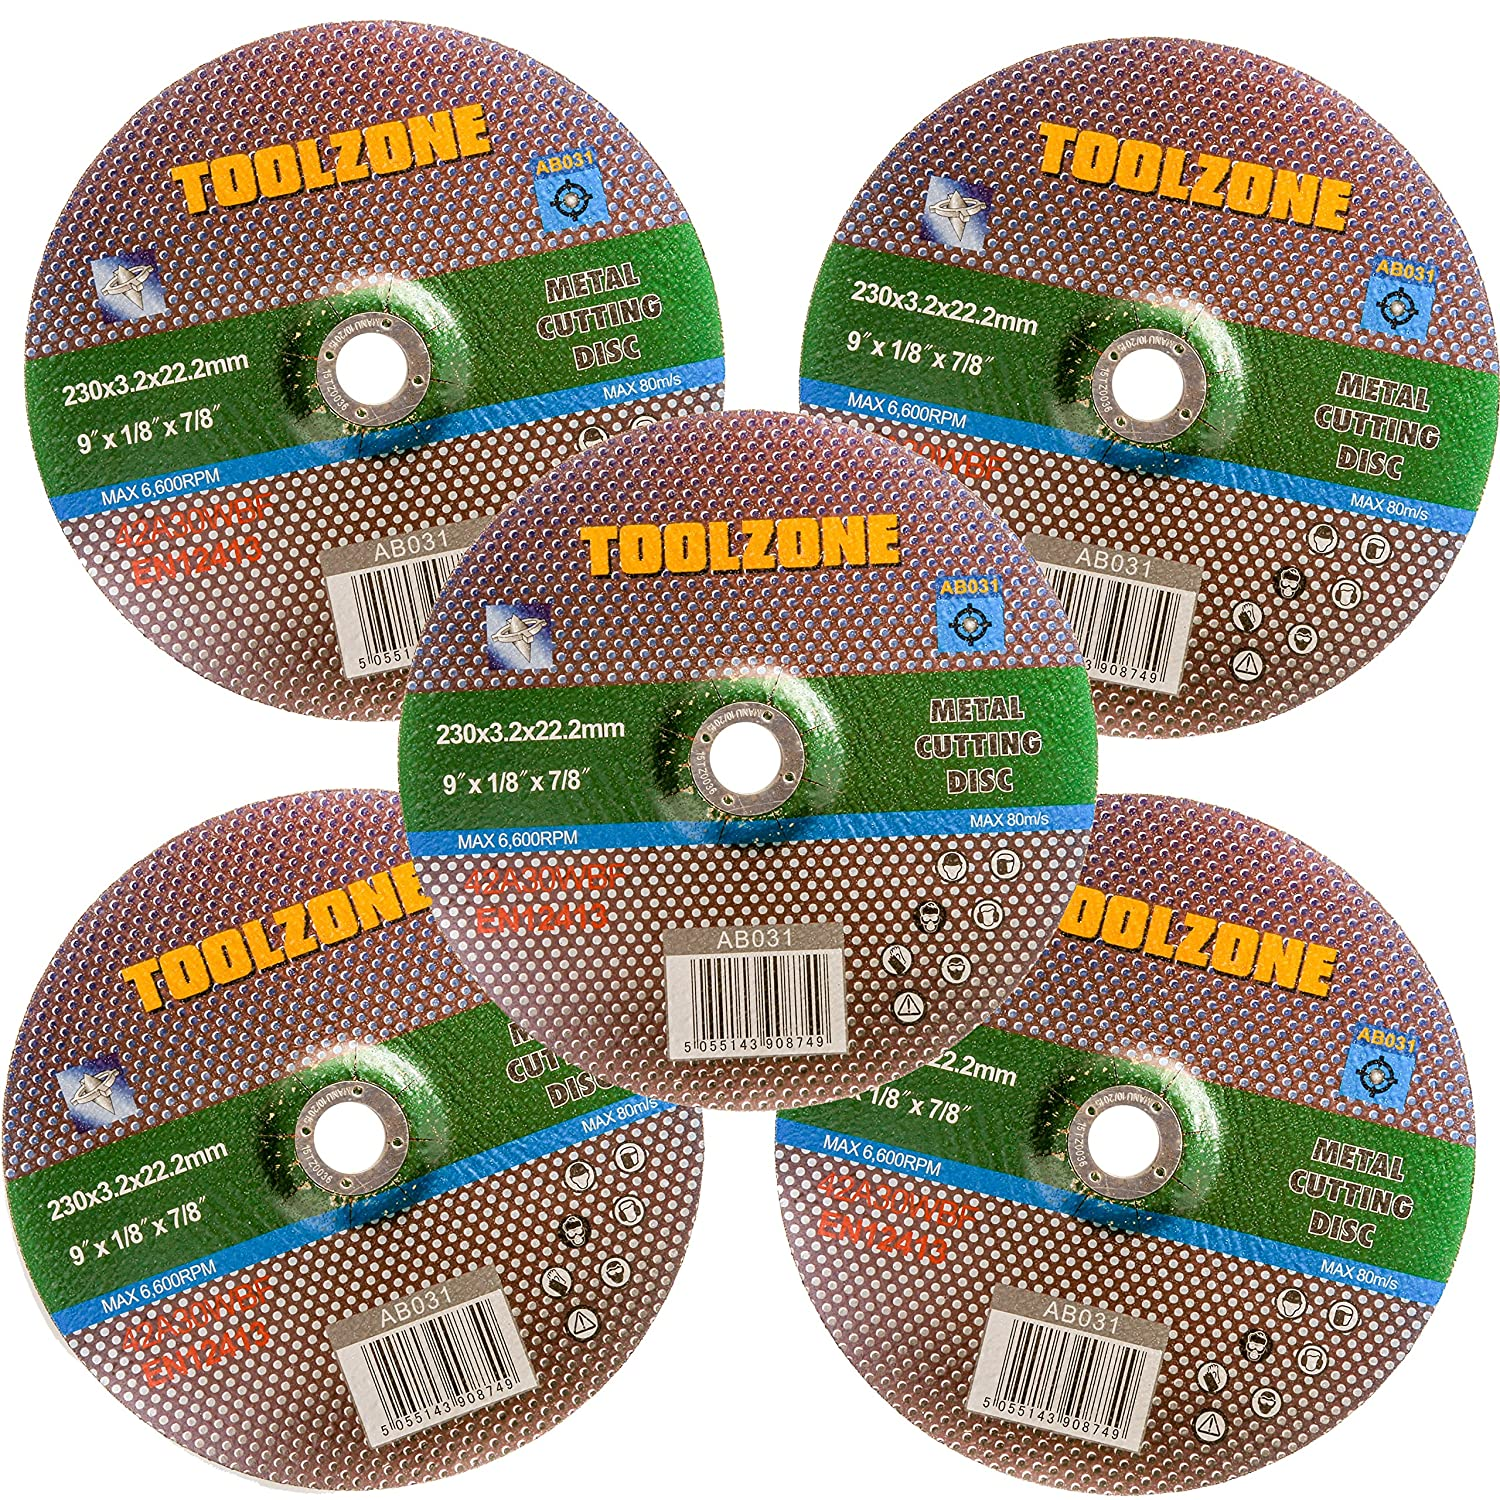 5x 230mm/9' Metal Cutting Discs | Thin 3.2mm Angle Grind Wheel With Depressed Centre White Hinge